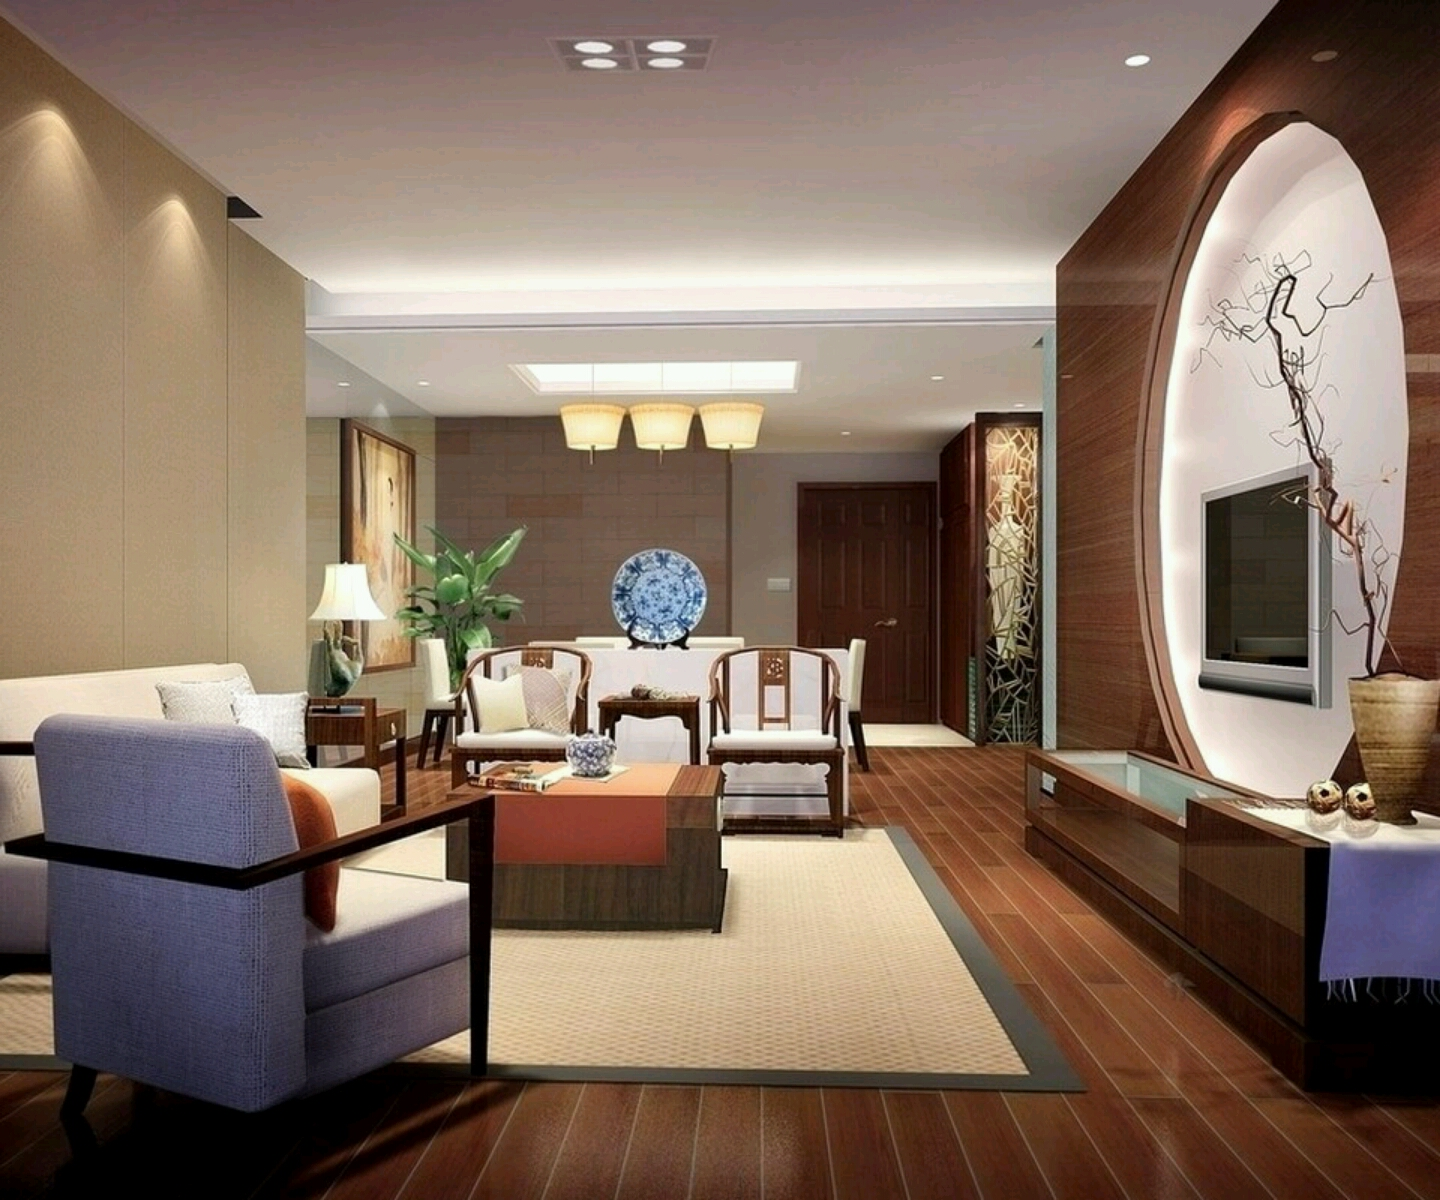 Home Interior Design Ideas For Small Living Room: Luxury Homes Interior Decoration Living Room Designs Ideas